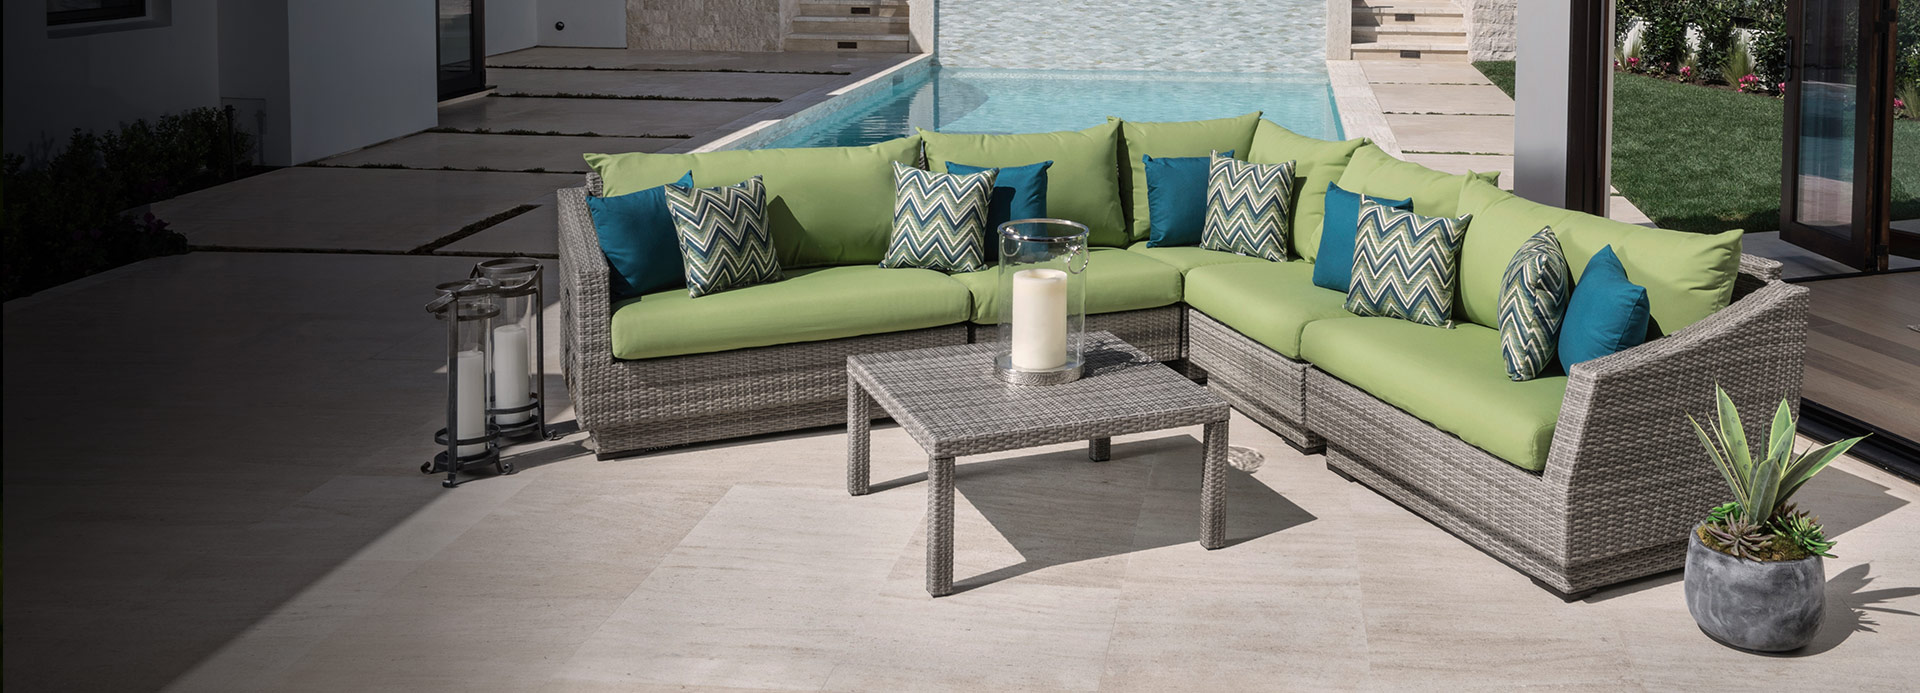 patio couch set patio furniture outdoor set sets hammock seating